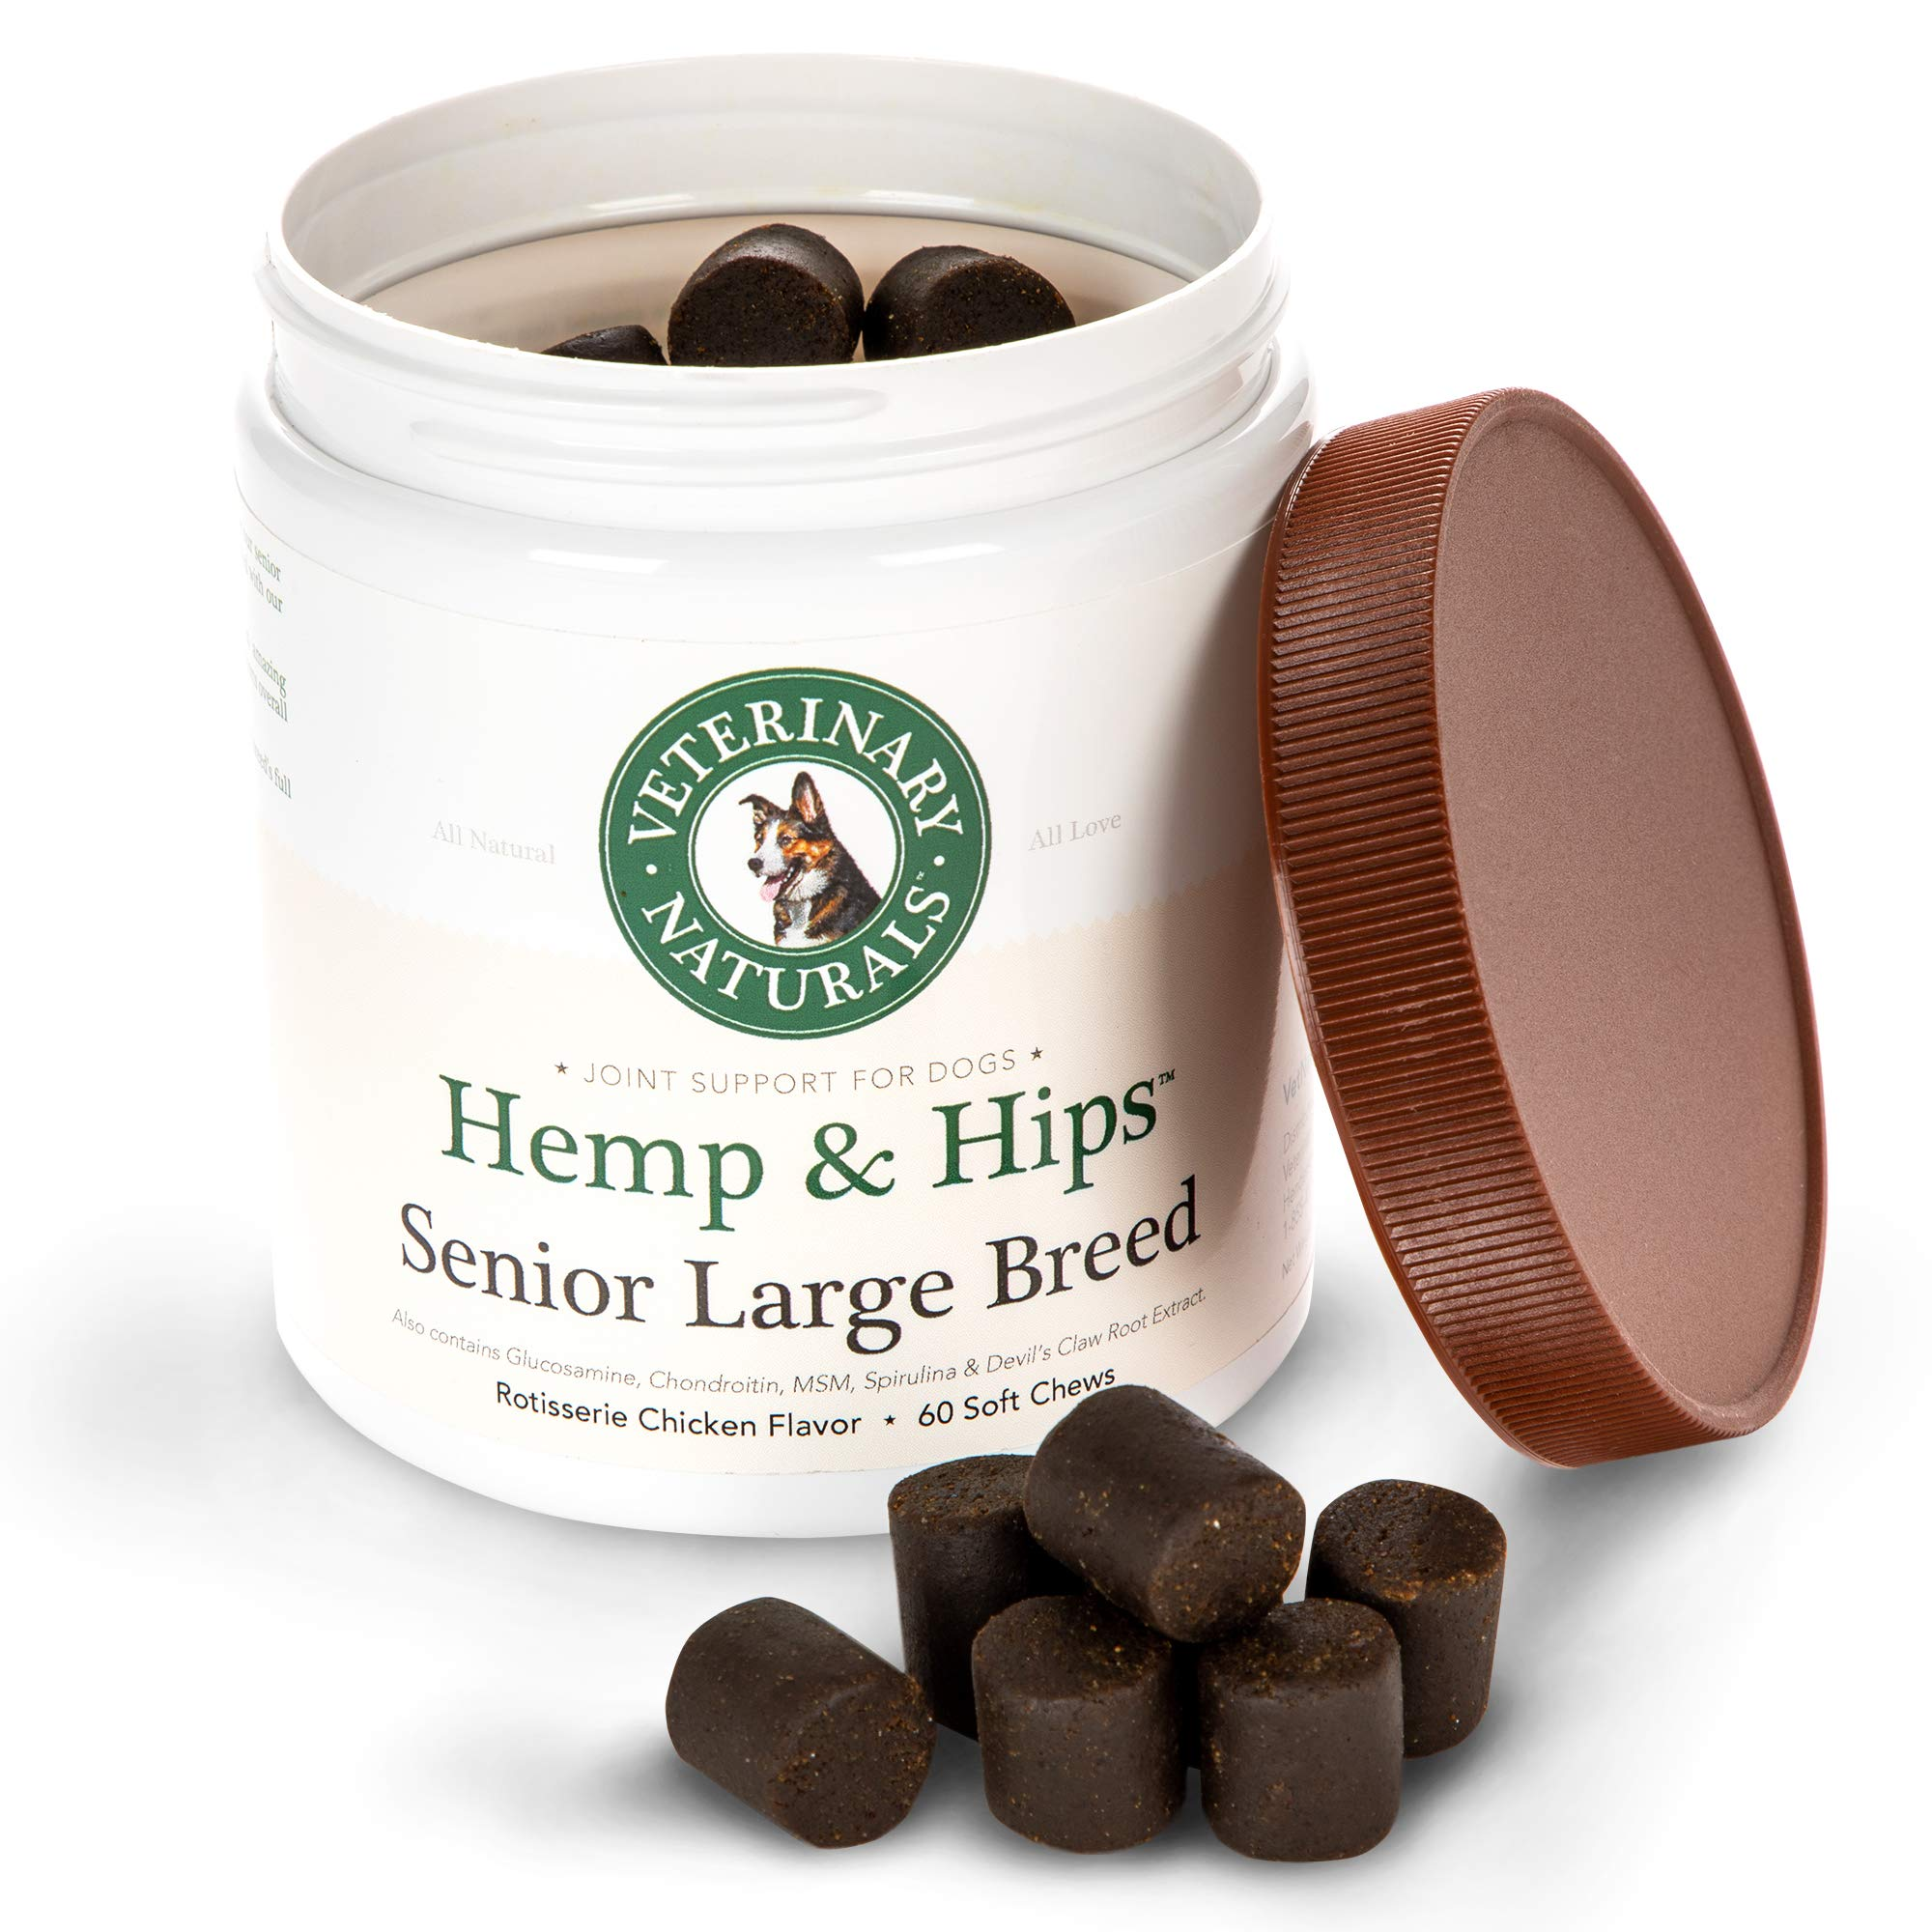 Veterinary Naturals Hemp & Hips Dog Joint Supplement - Glucosamine and Hemp Oil for Dogs - 'Senior Large Breed' Dog Arthritis Supplement - 60 Soft Chew Senior Dog Vitamins, Rotisserie Chicken Flavor by Veterinary Naturals (Image #3)